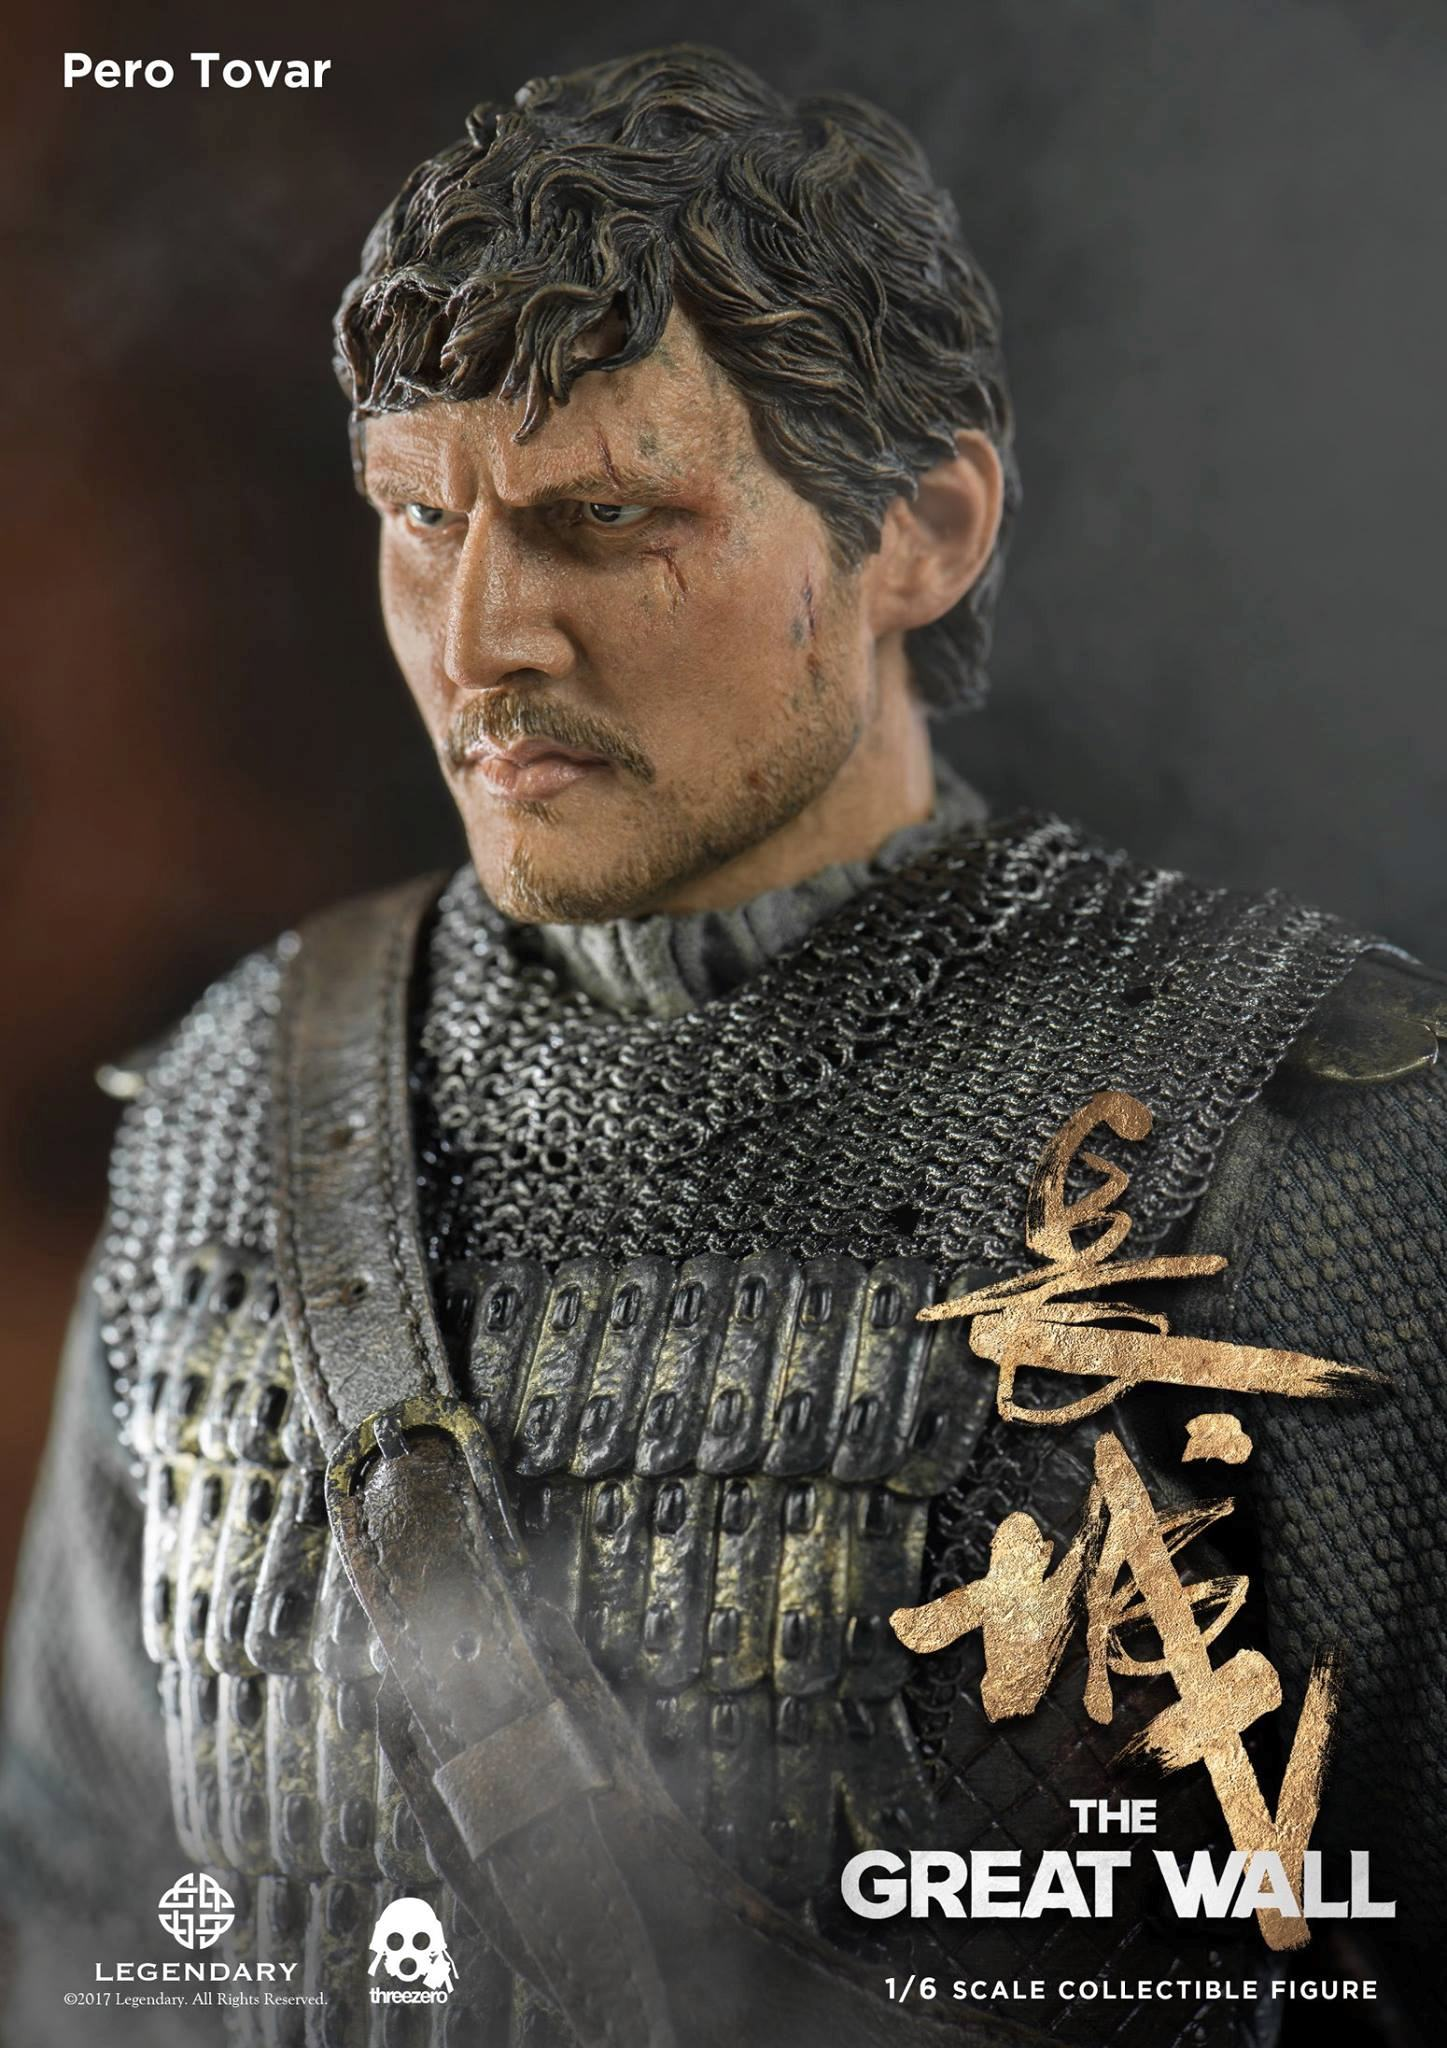 Pero-Tovar-The-Great-Wall-Action-Figure-08